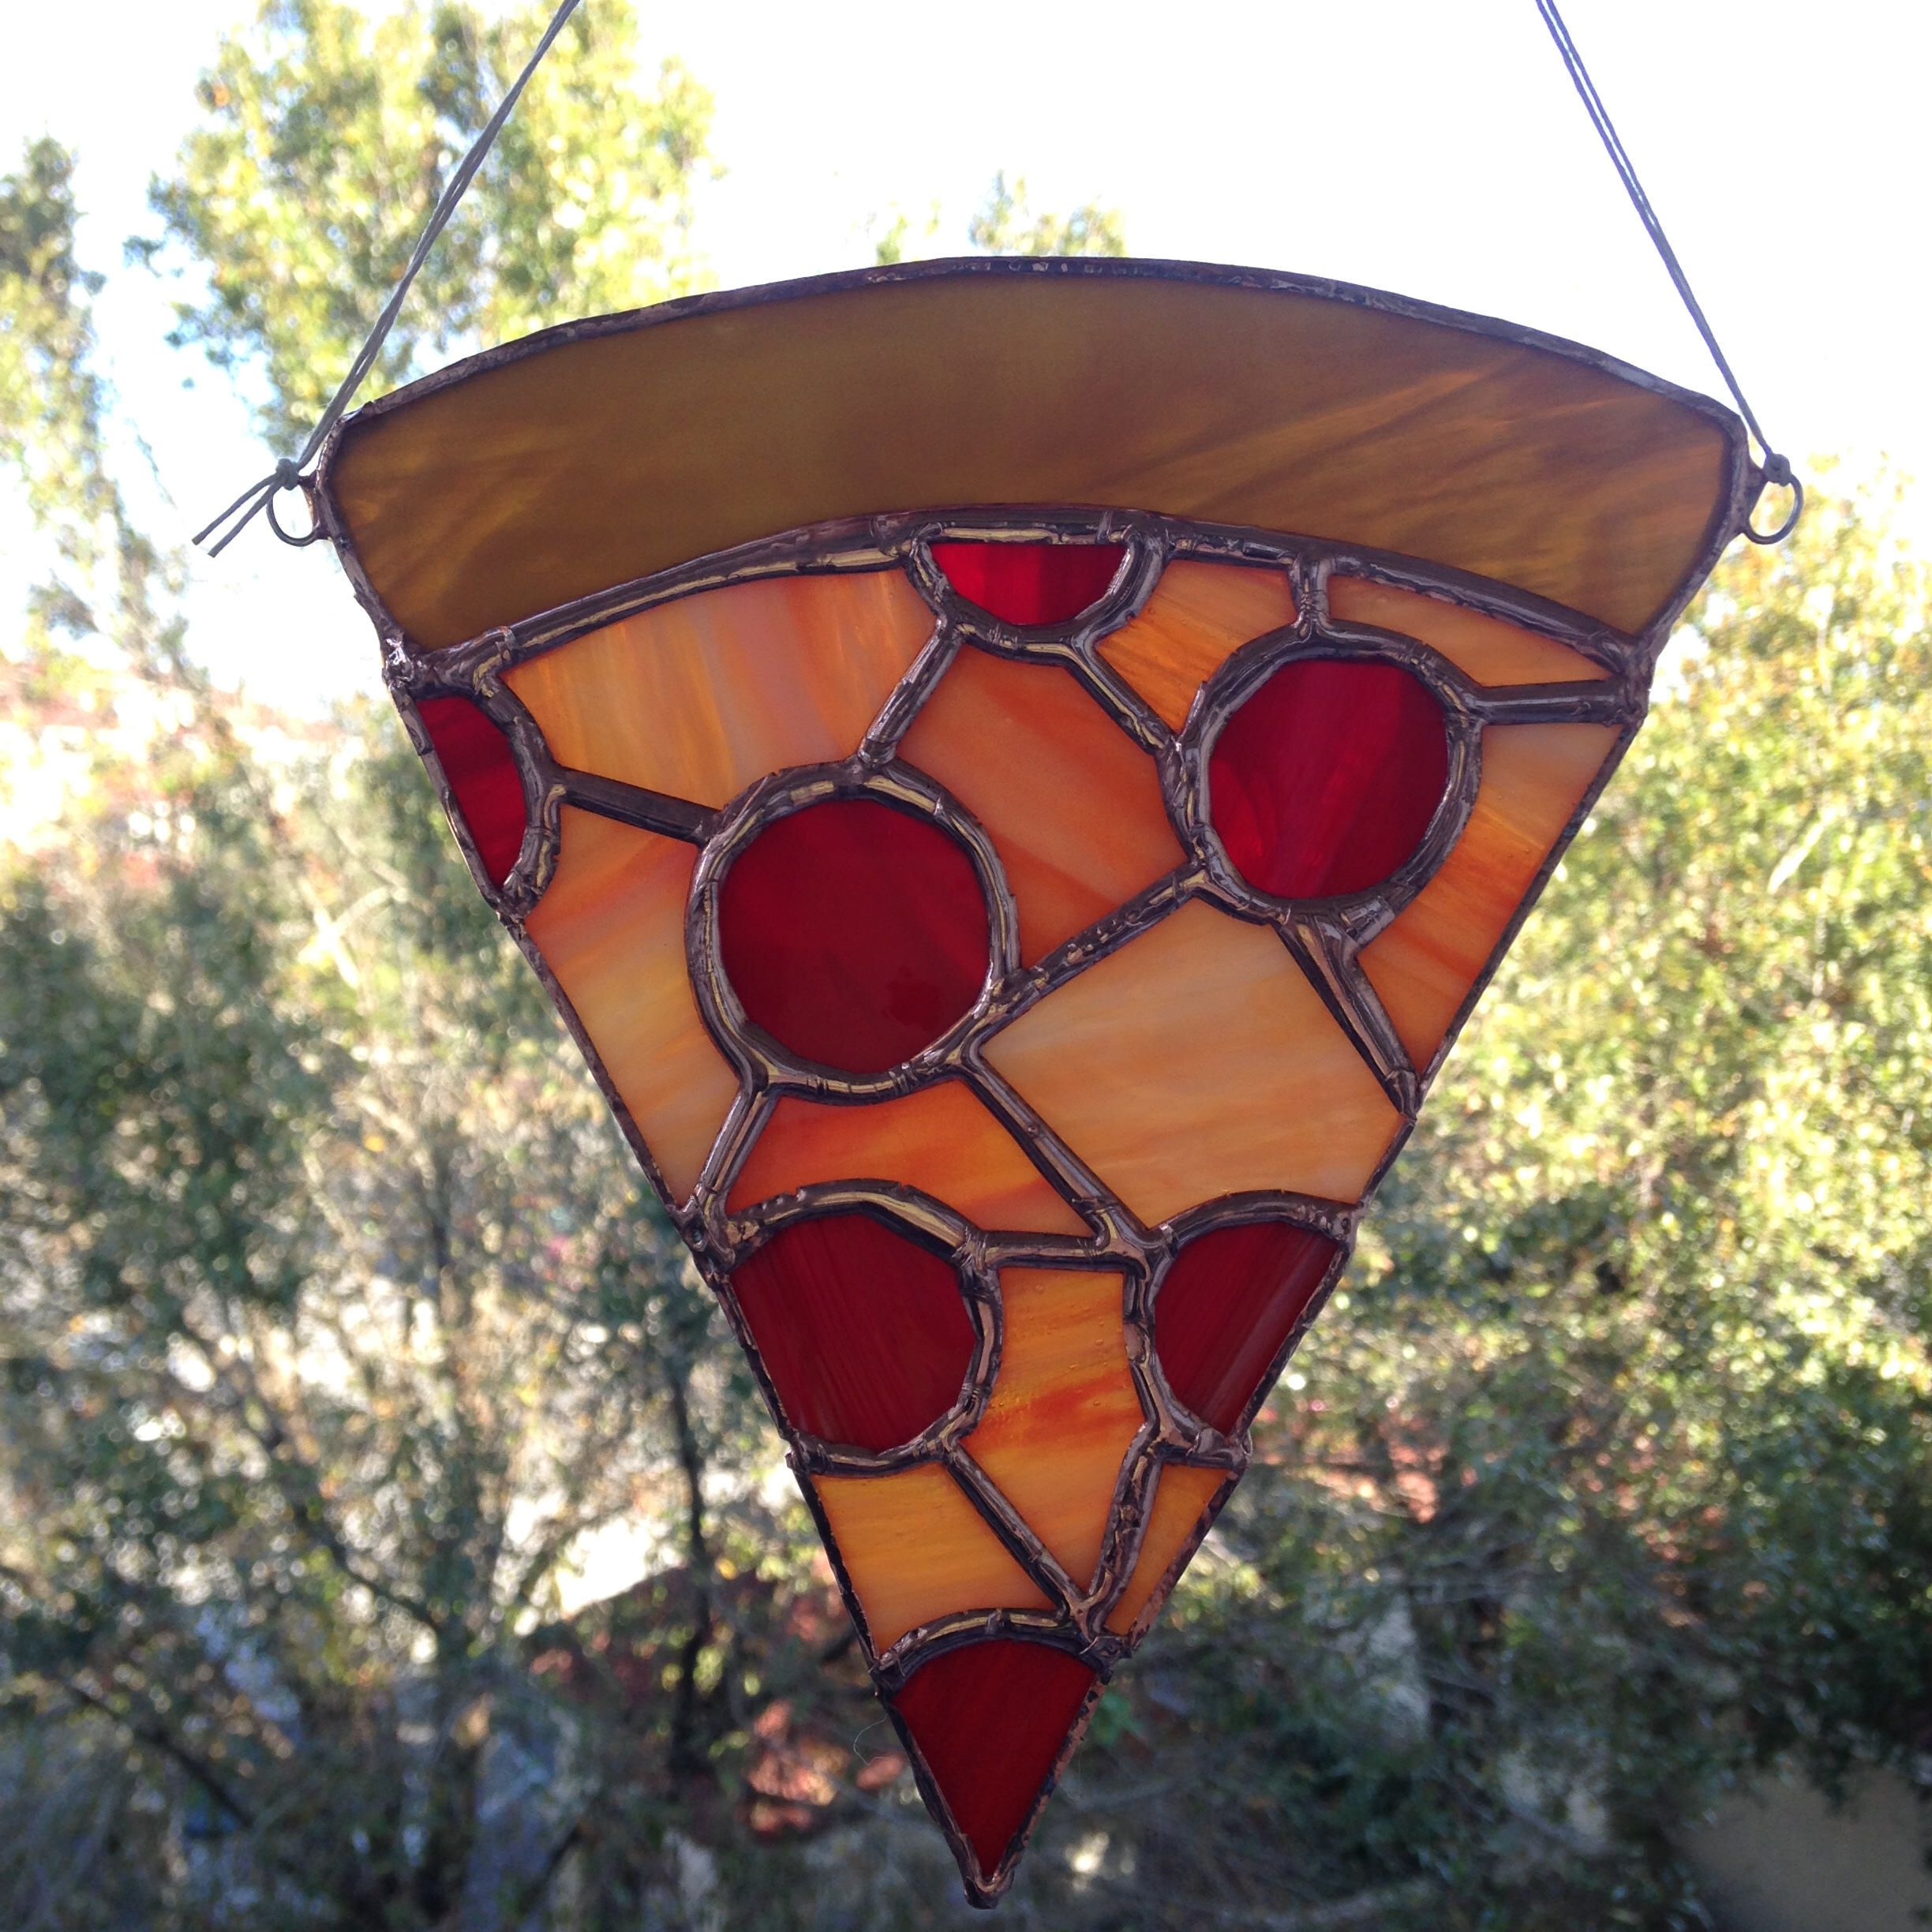 Stained Glass Pizza By Riseandshineglassfl On Etsy Https Www Etsy Com Listing 567556378 Stained Glass Pizza Stained Glass Just Pizza Stain